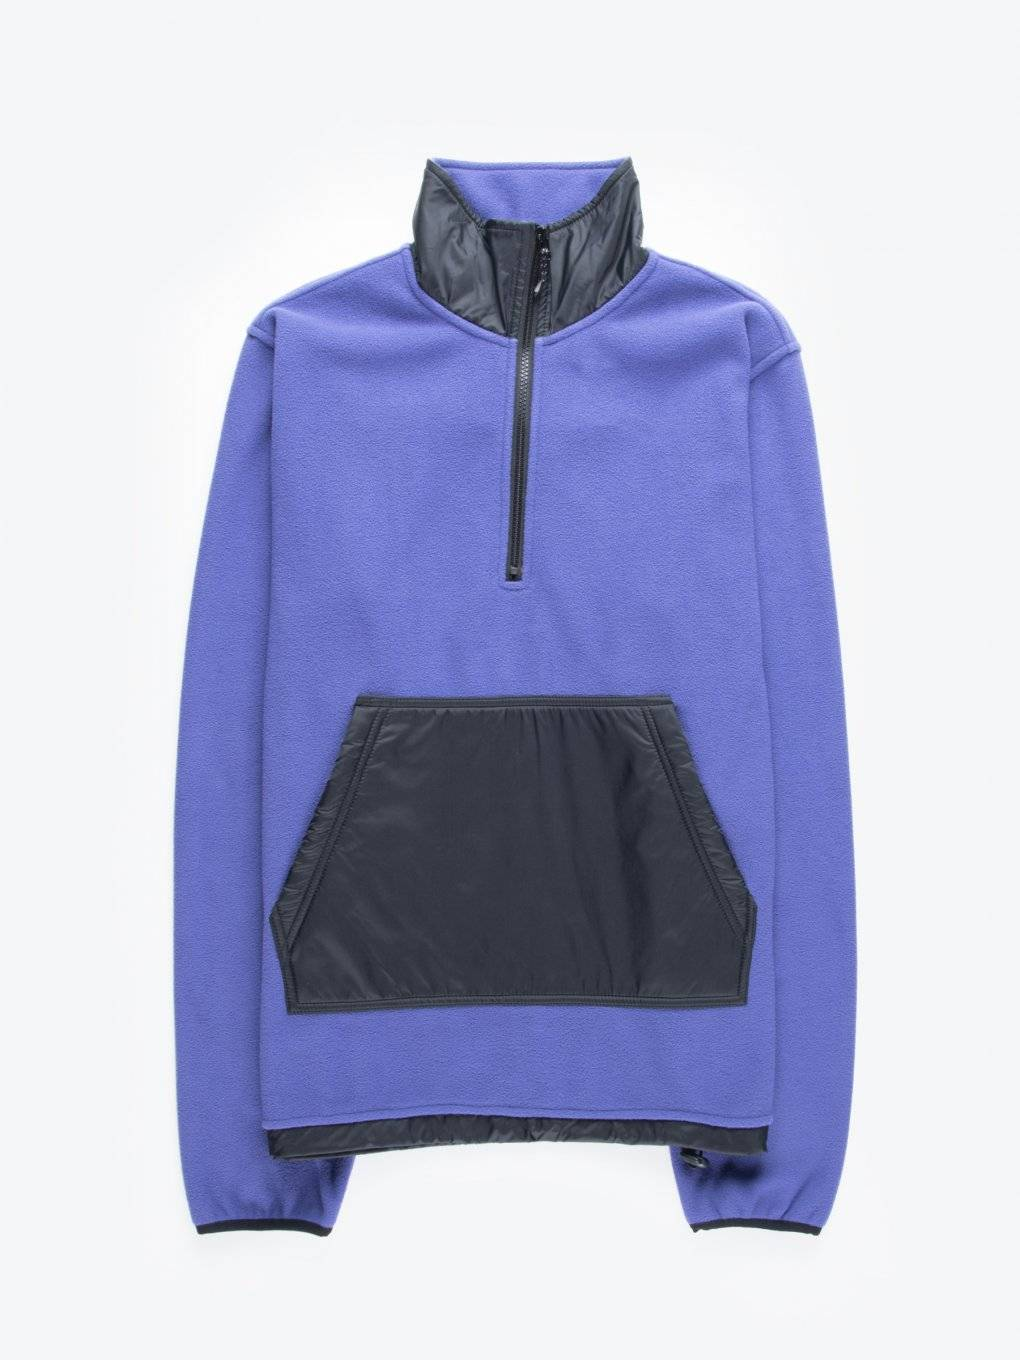 Combined fleece sweatshirt